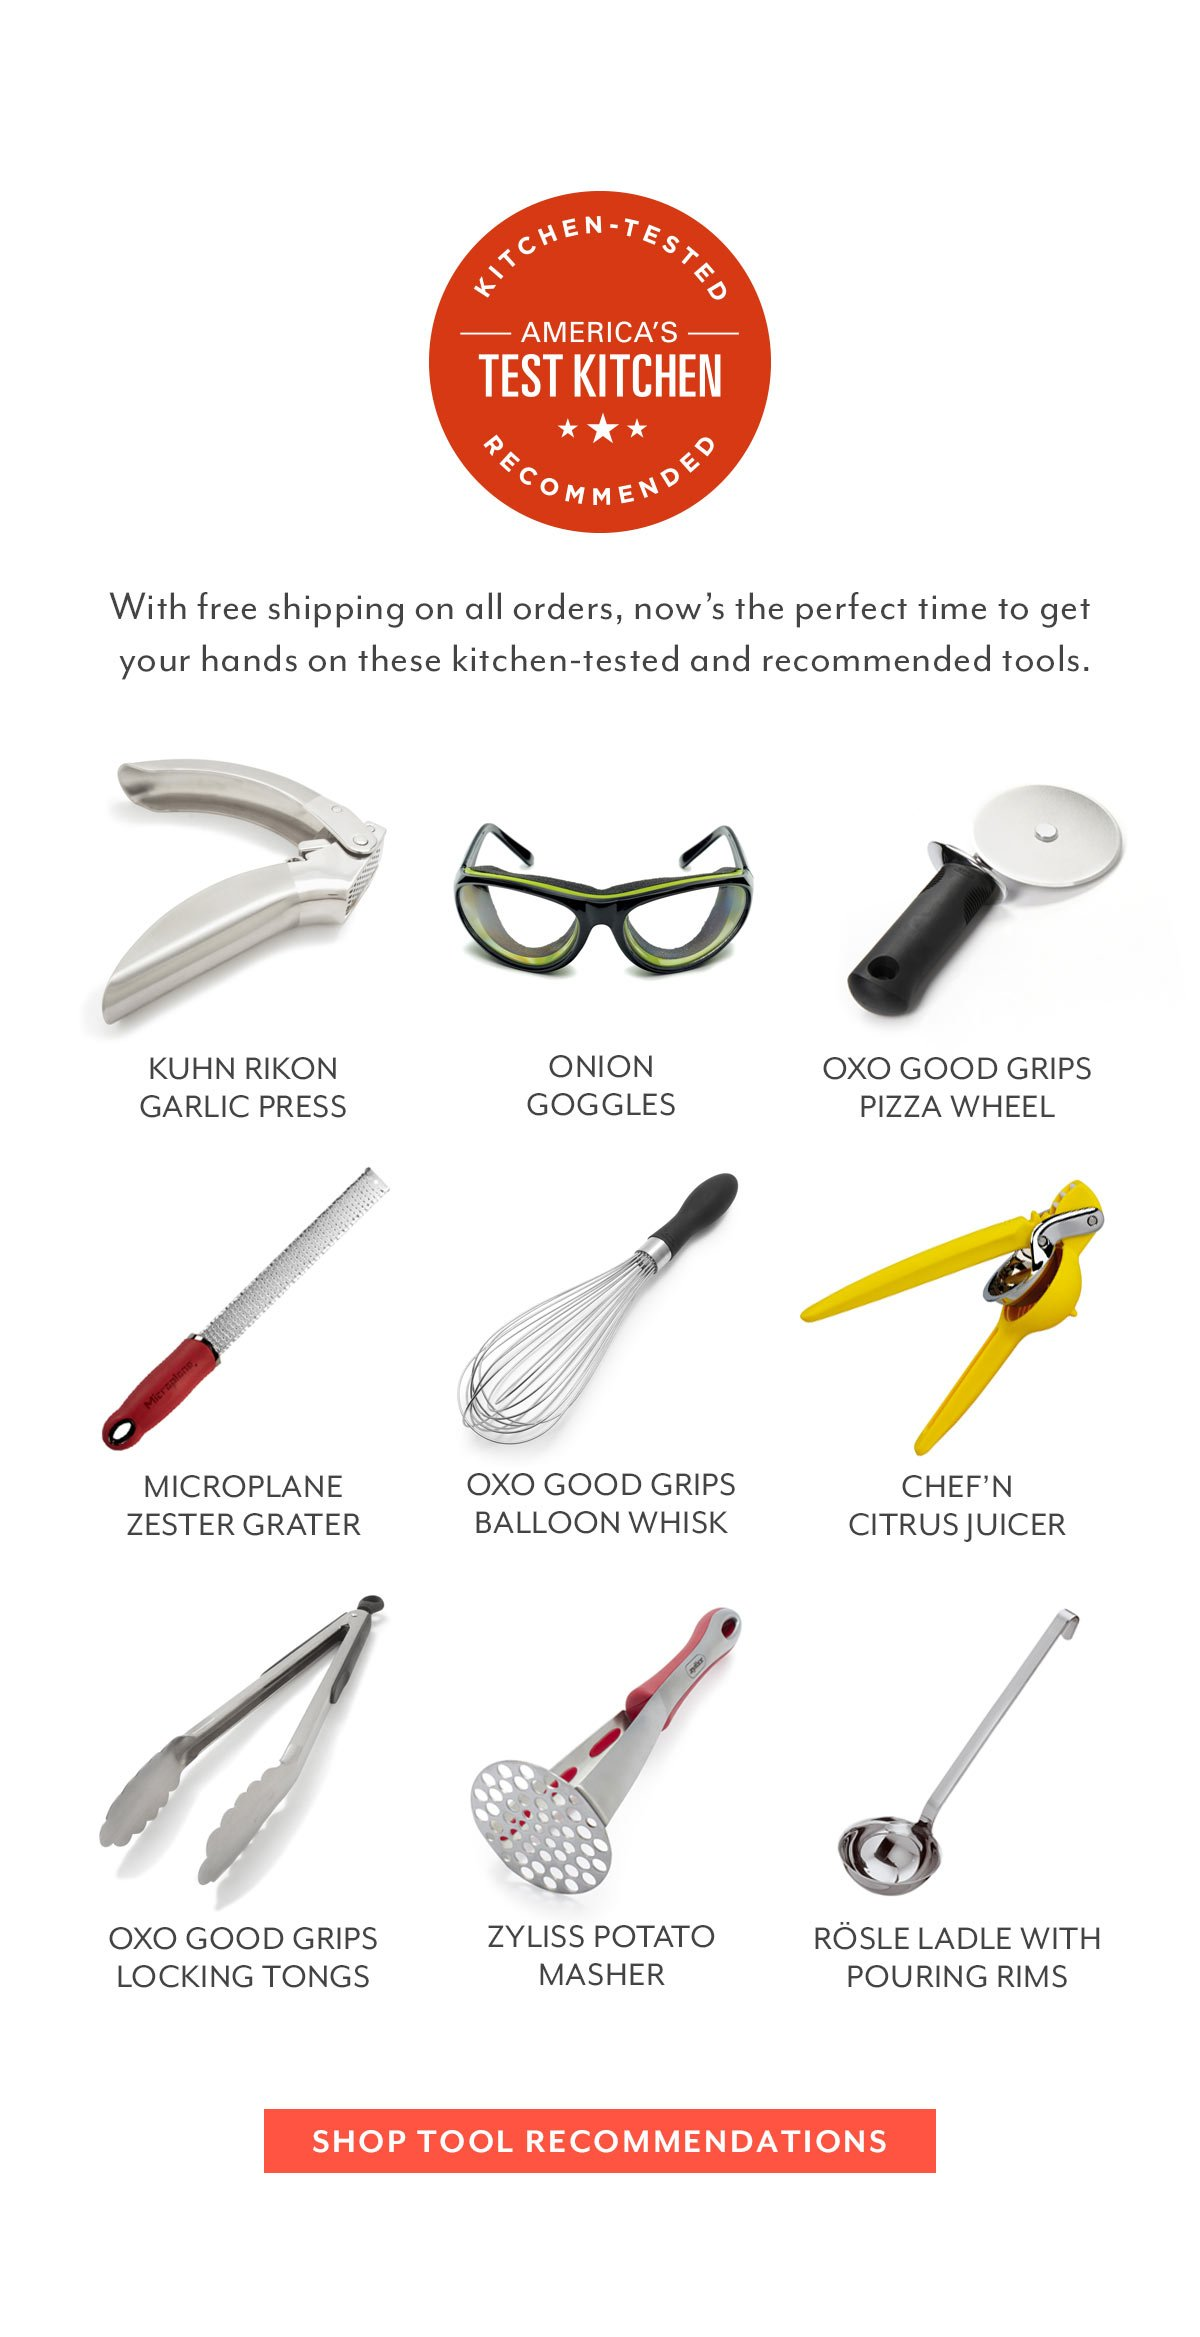 America's Test Kitchen Tool Recommendations